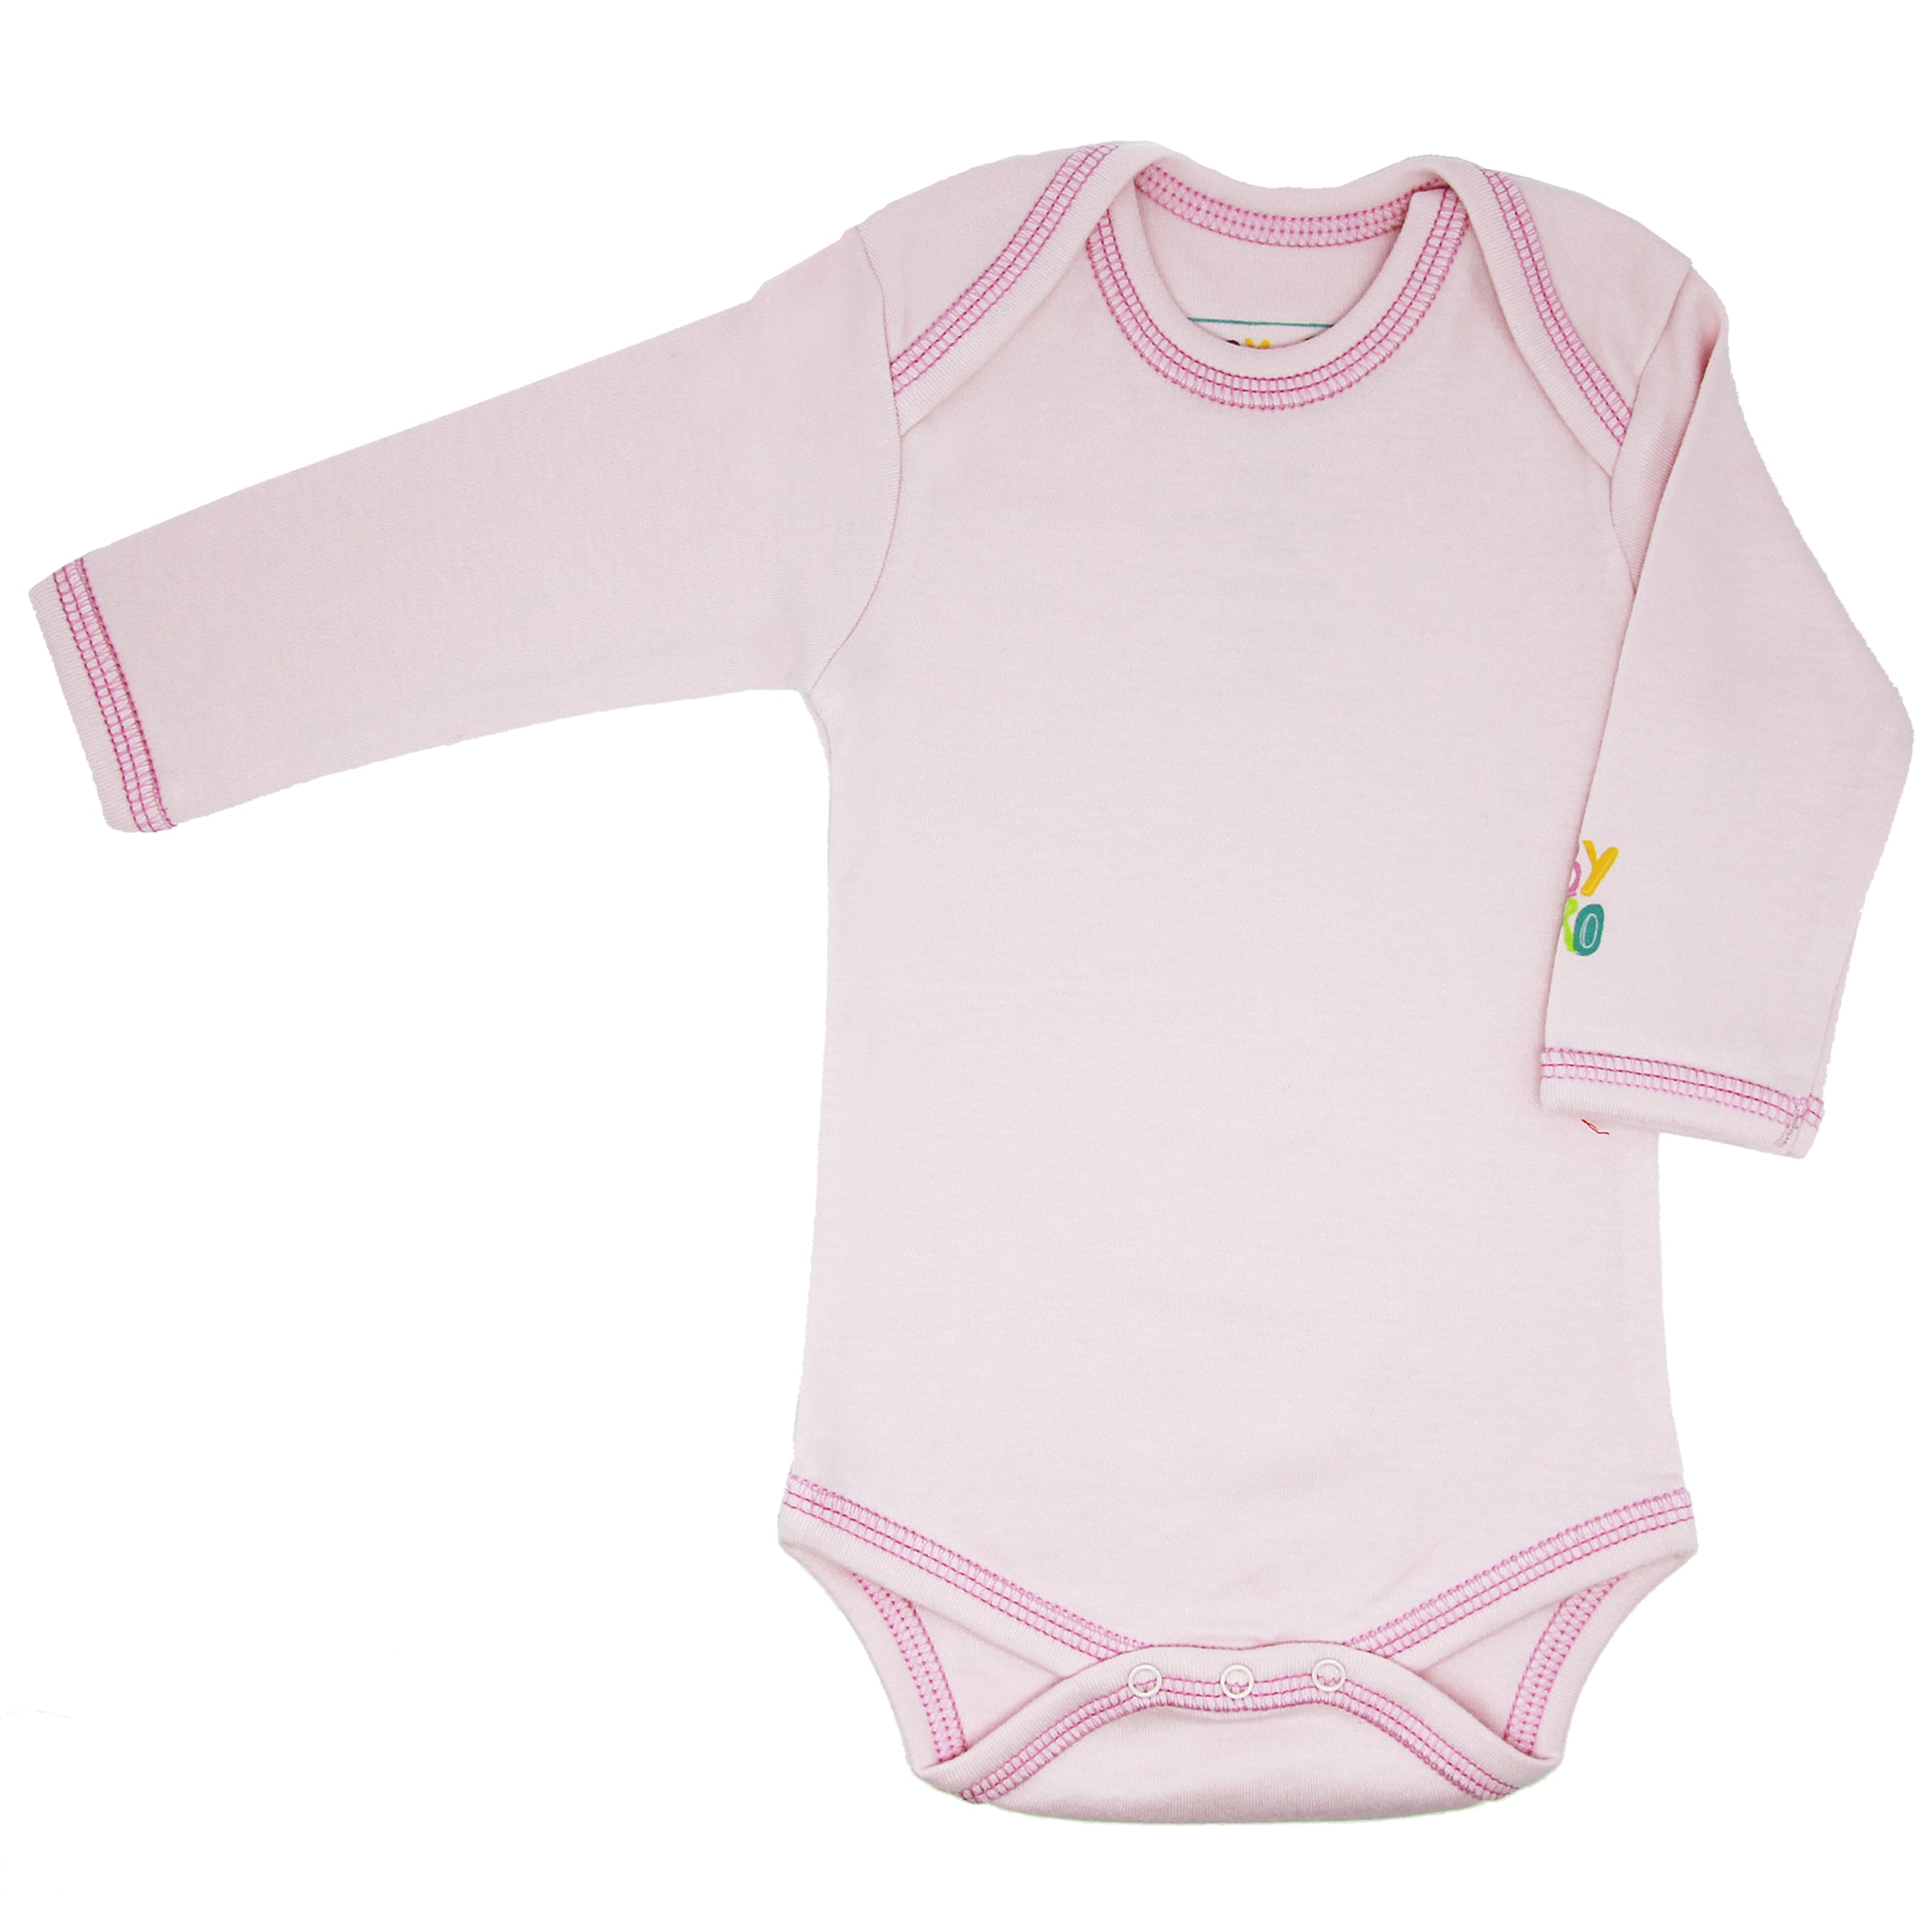 Unique Baby Gifts $35 and Under Organic Baby Clothes